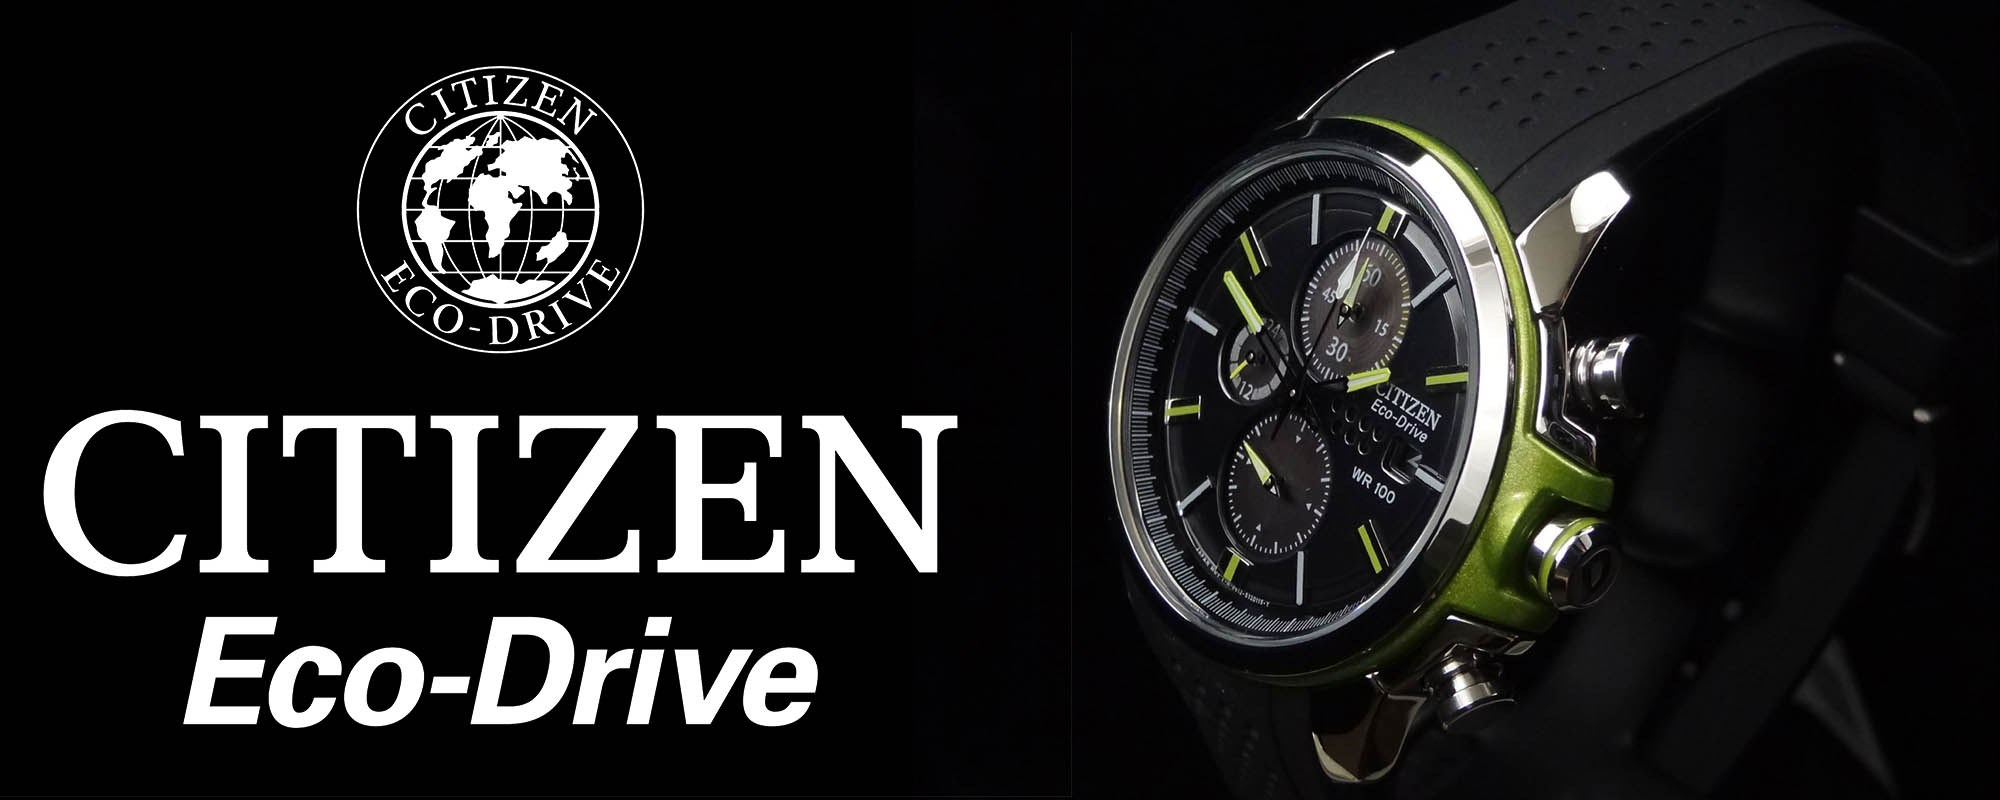 Citizen EcoDrive watch banner